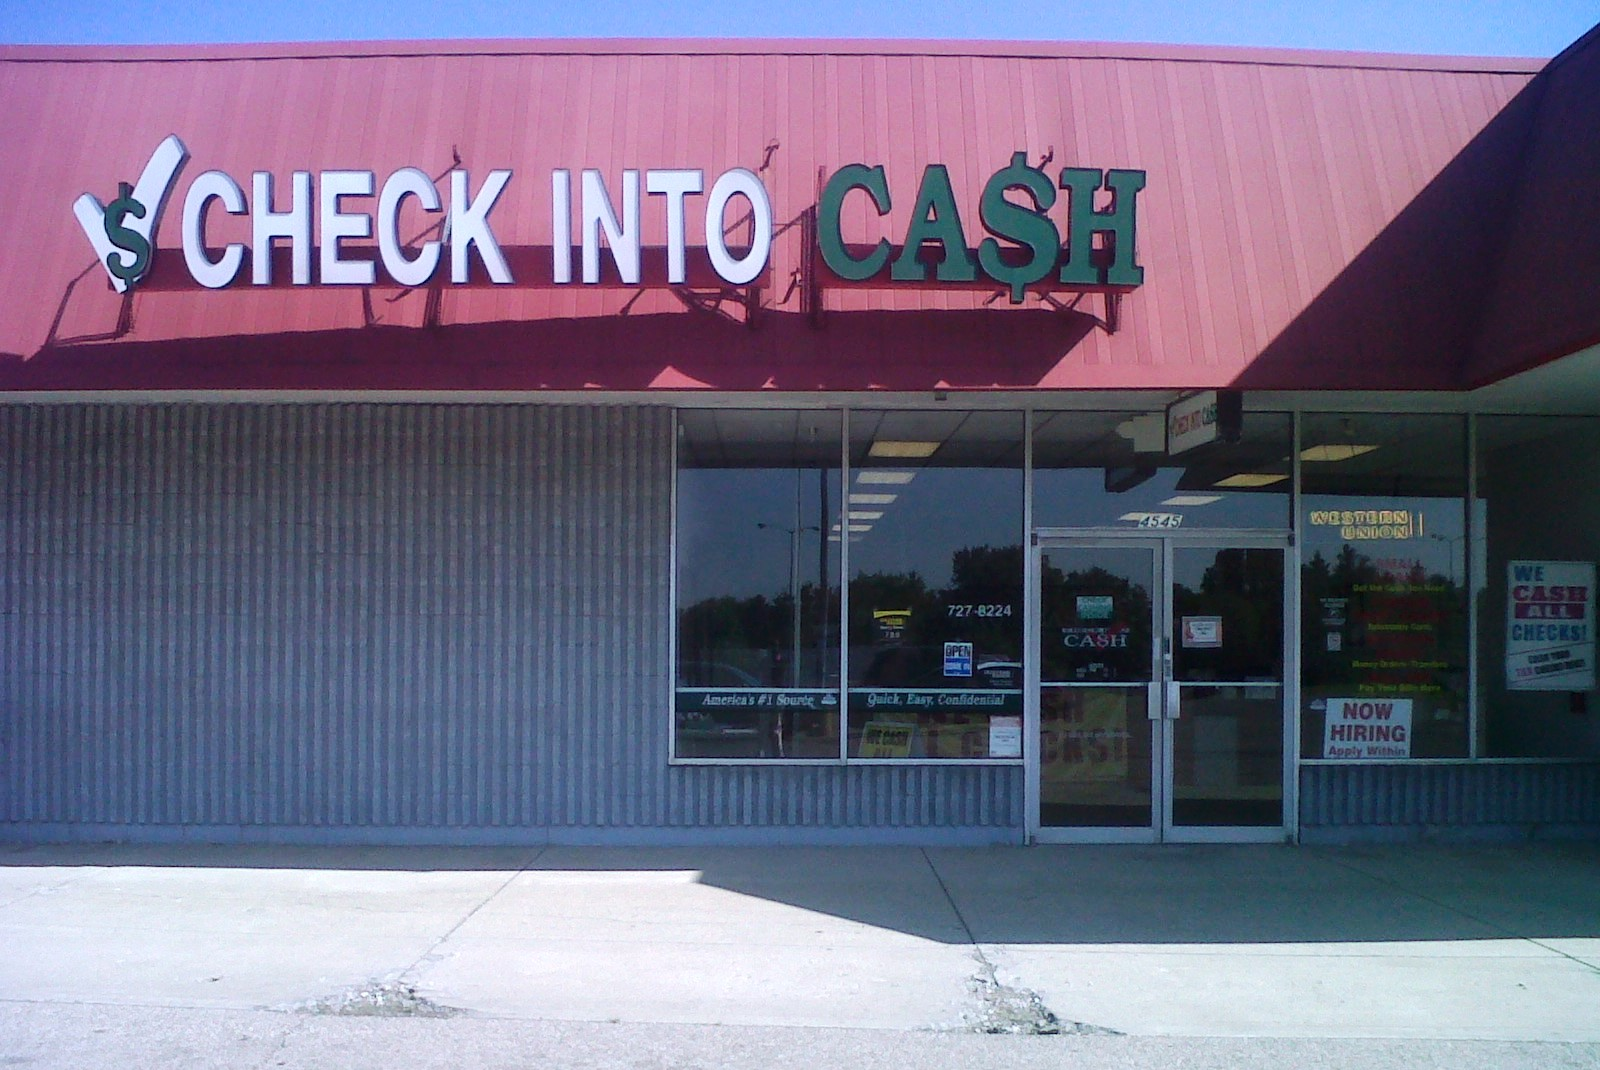 Cash advance america bartow fl image 2